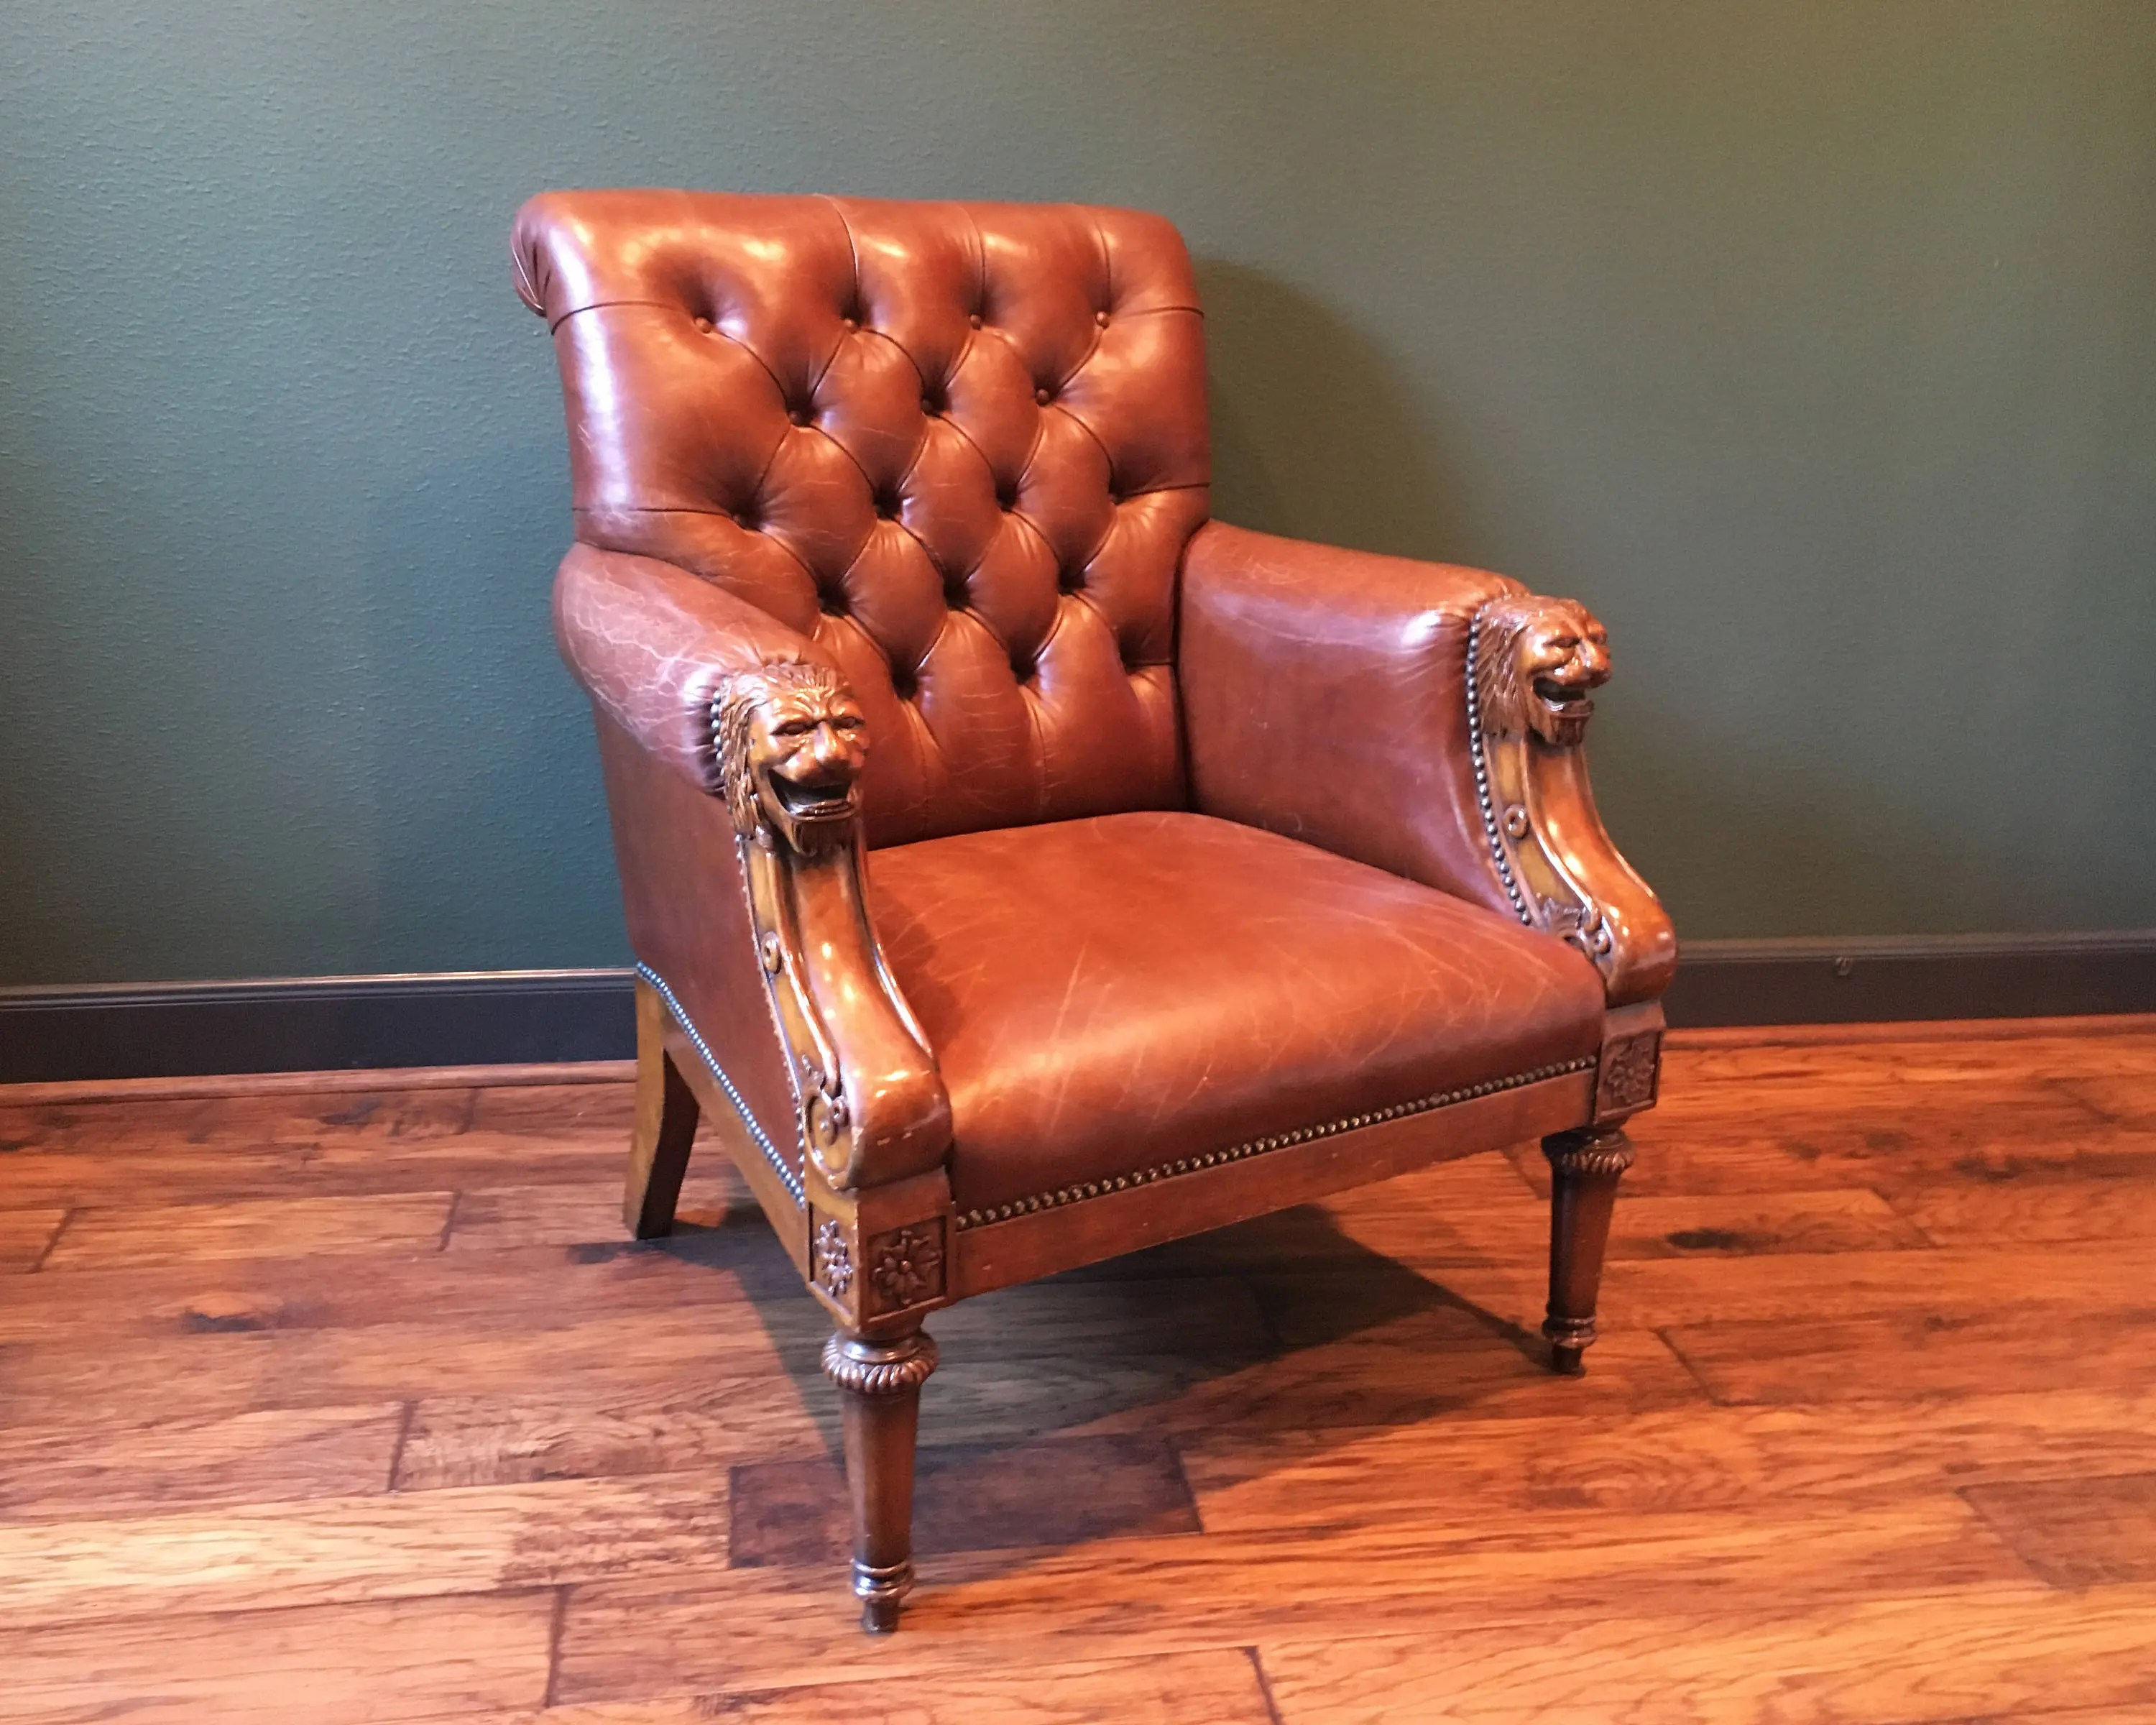 Wood Club Chair Antique Leather Chesterfield Chair With Lion Head Arms Maitland Smith Vintage Leather Chair Antique Club Chair Nailhead Accent Chair